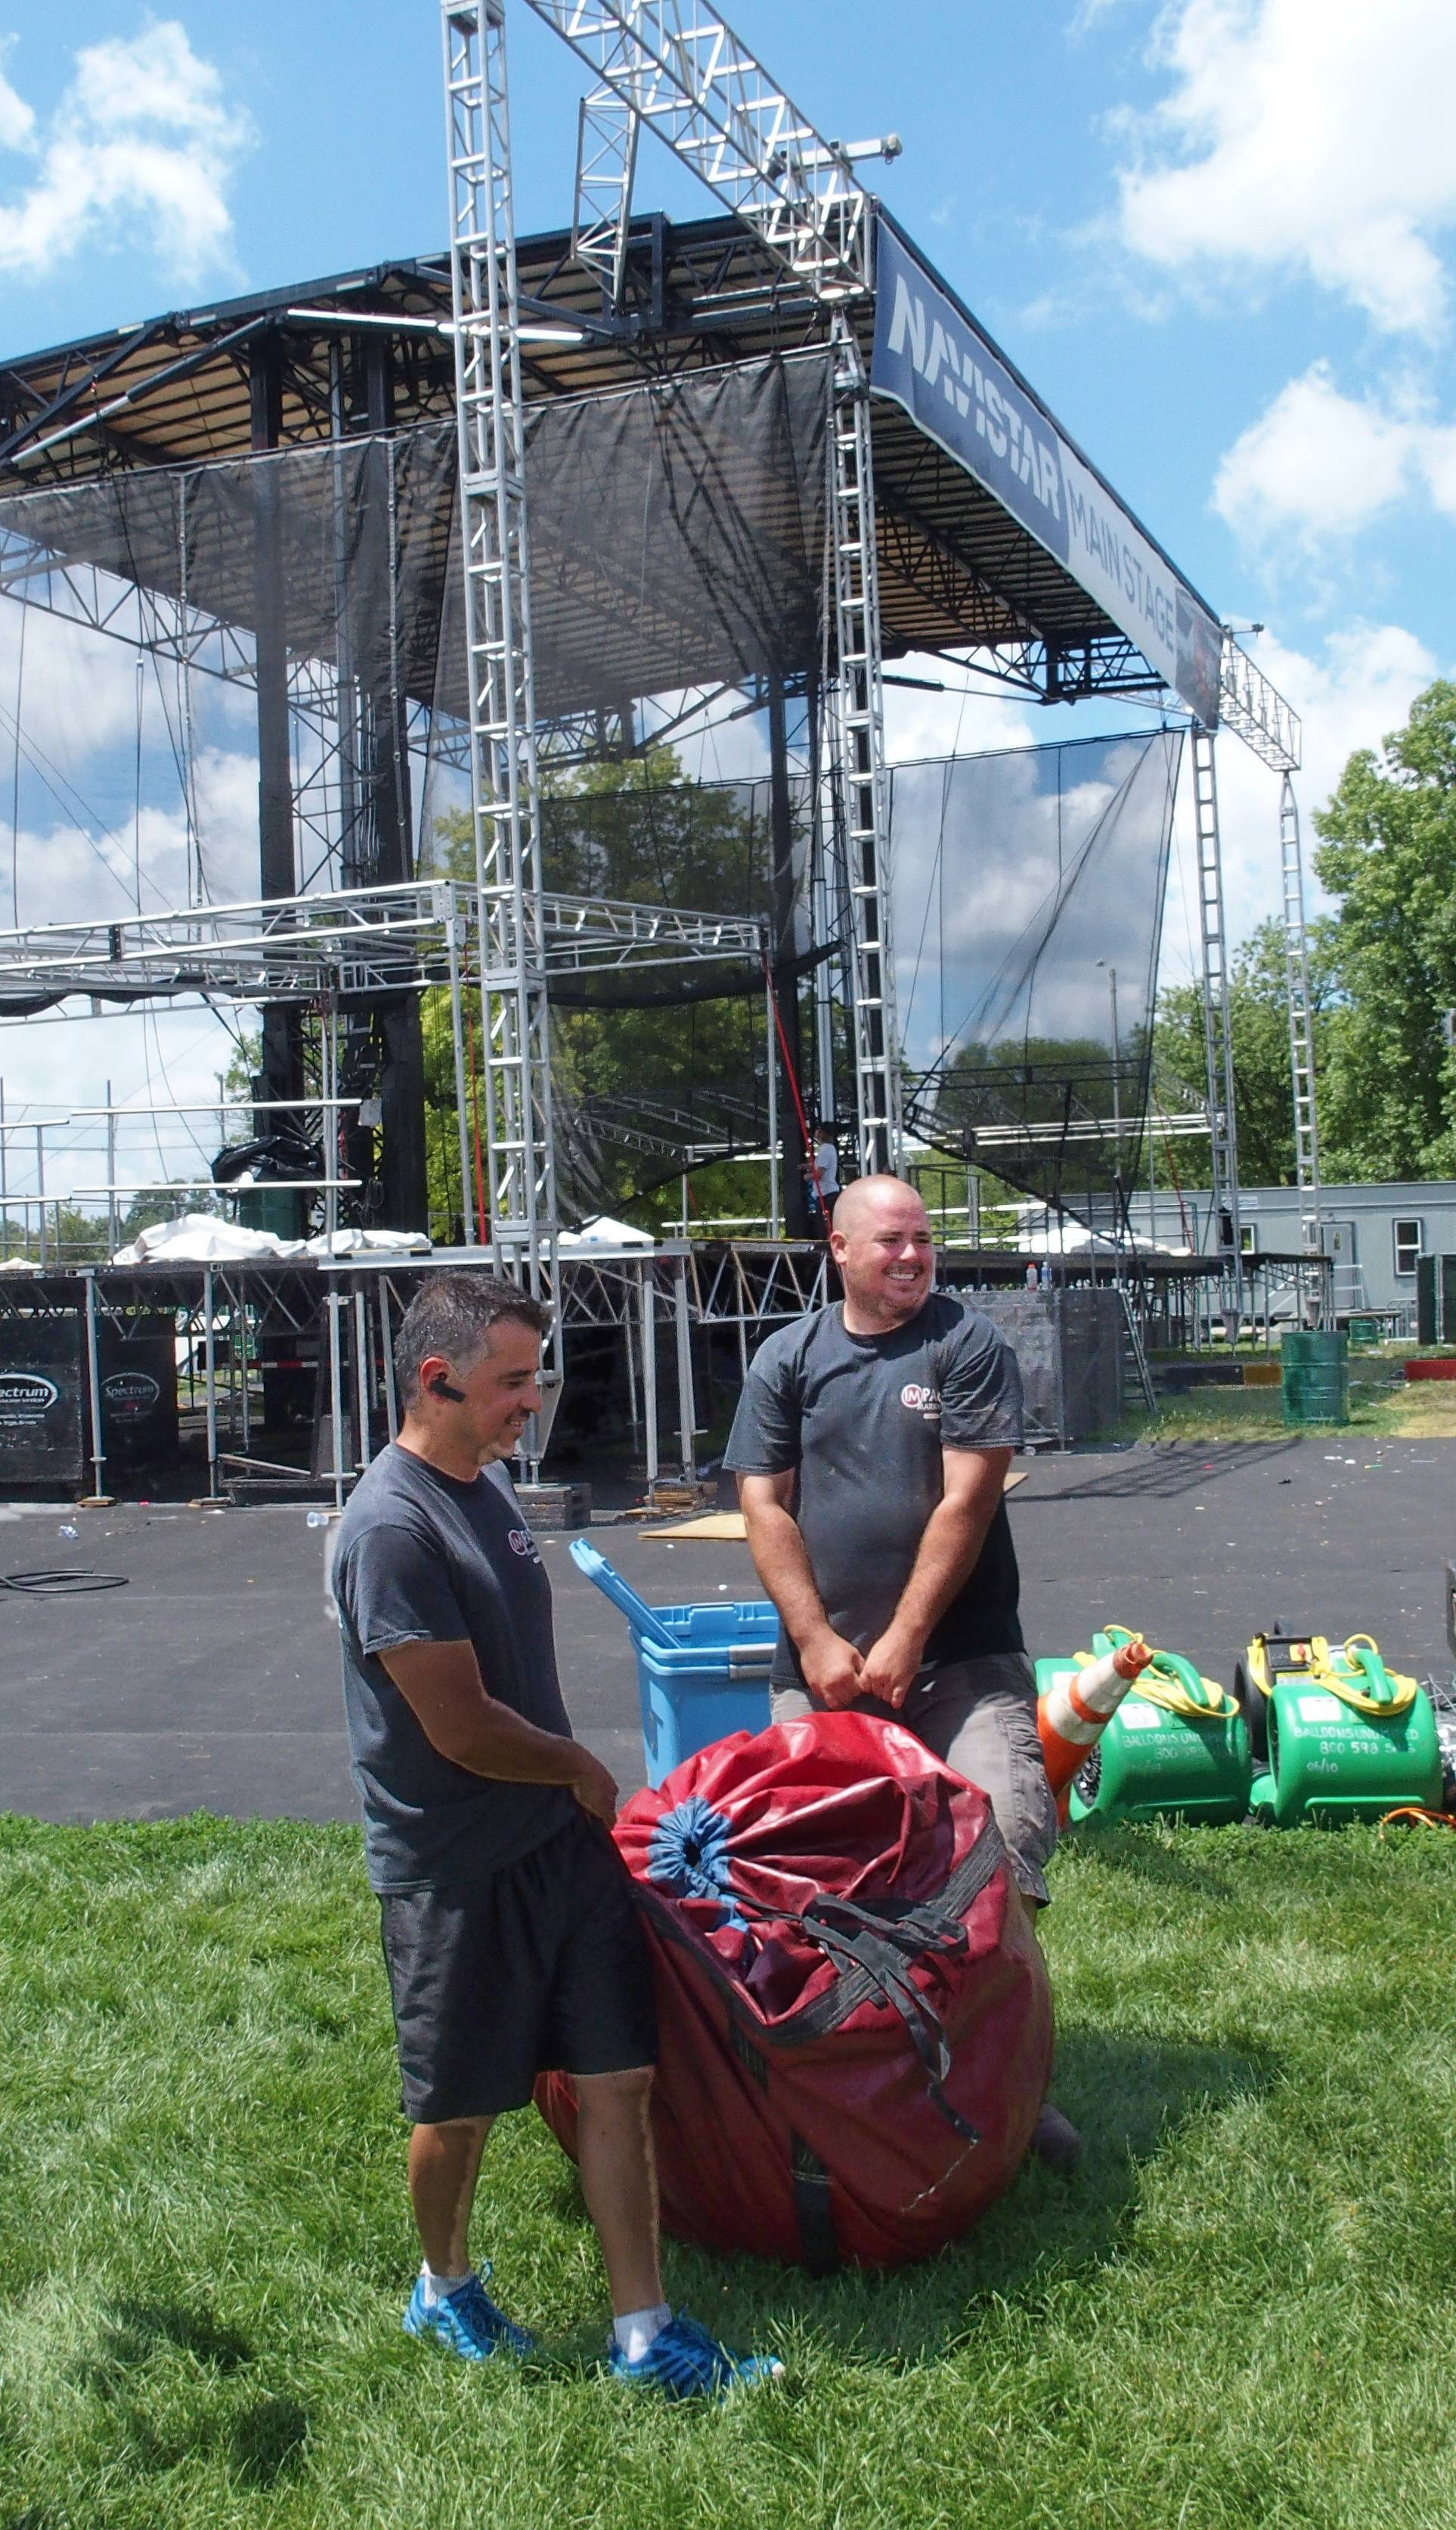 William Carrerro and Paul Mitchell haul away a bag containing a large advertising balloon that had been displayed near the main stage of Ribfest in Naperville. Cleanup of the park is set to conclude Tuesday after the four-day festival.